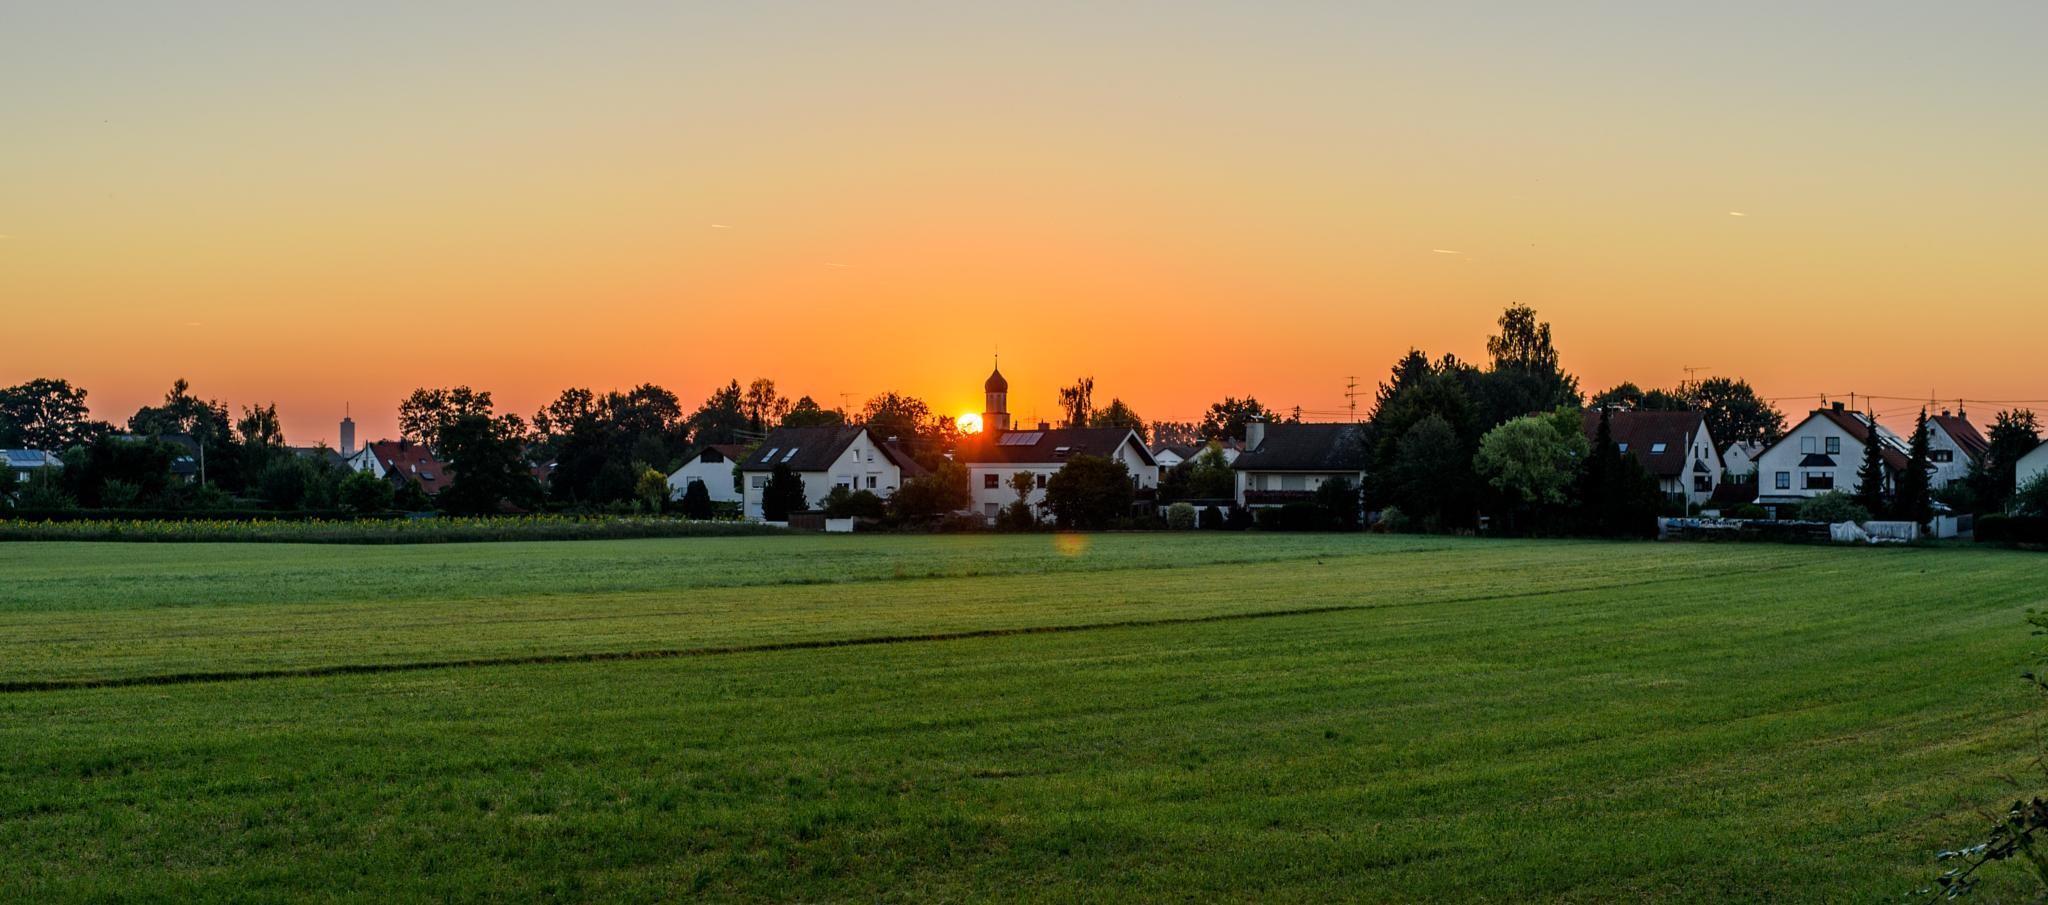 summer morning Augsburg-Bergheim by designatgarten